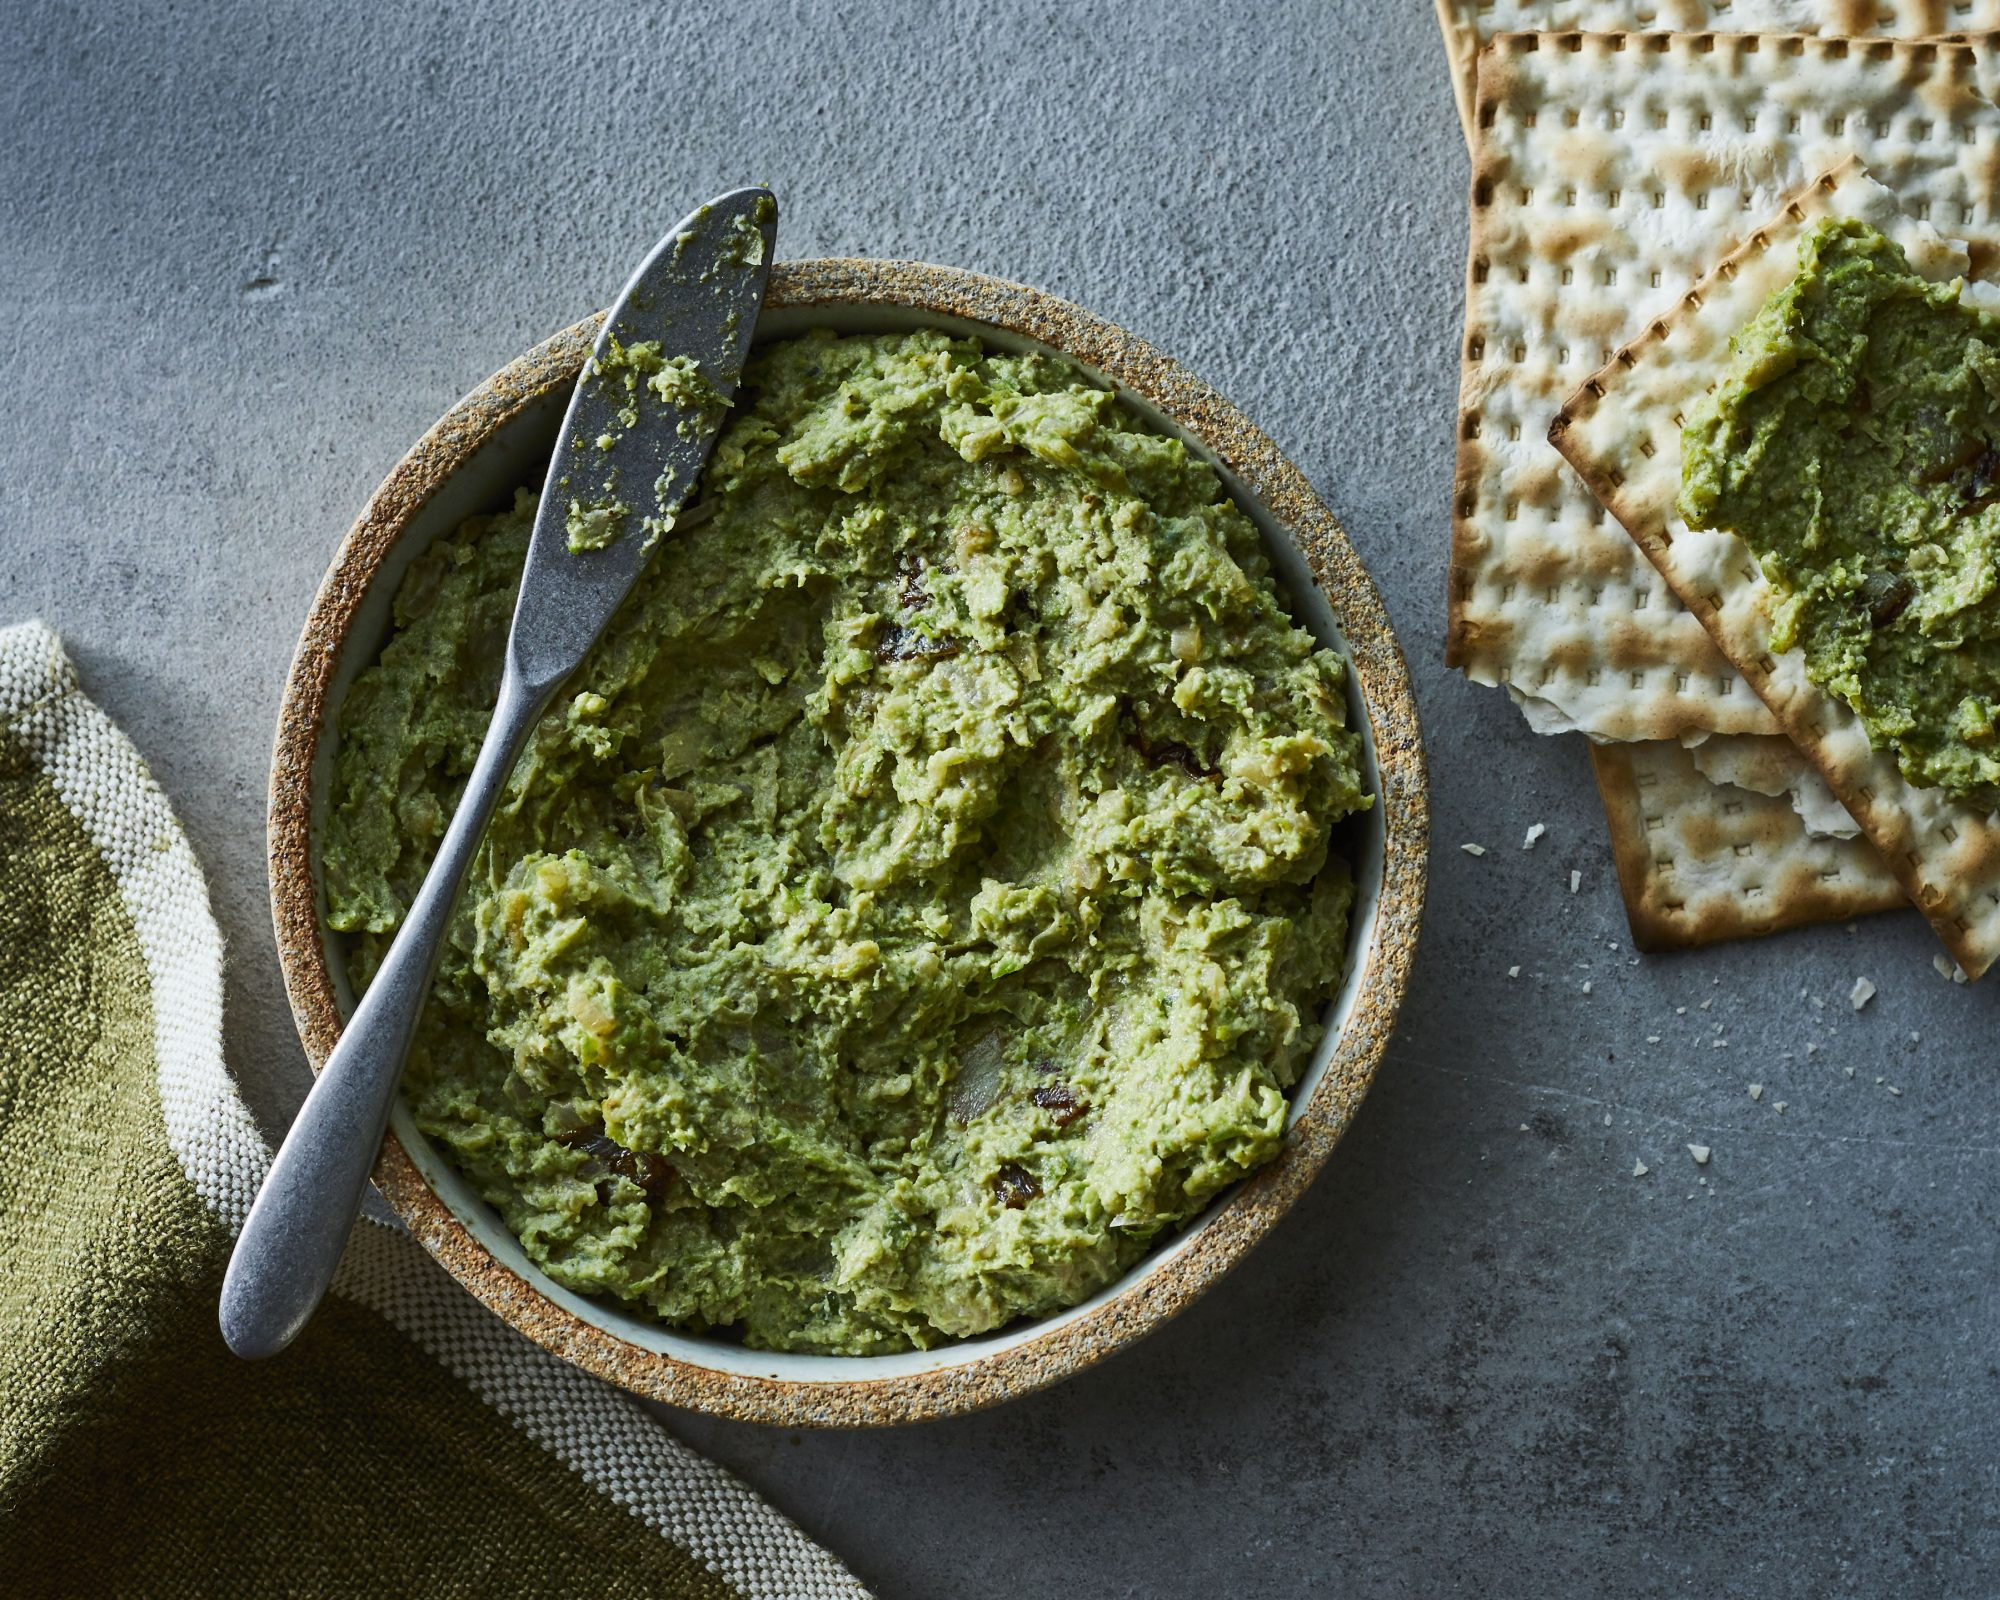 Safta's Mock Liver (Green Bean and Pea Pate)